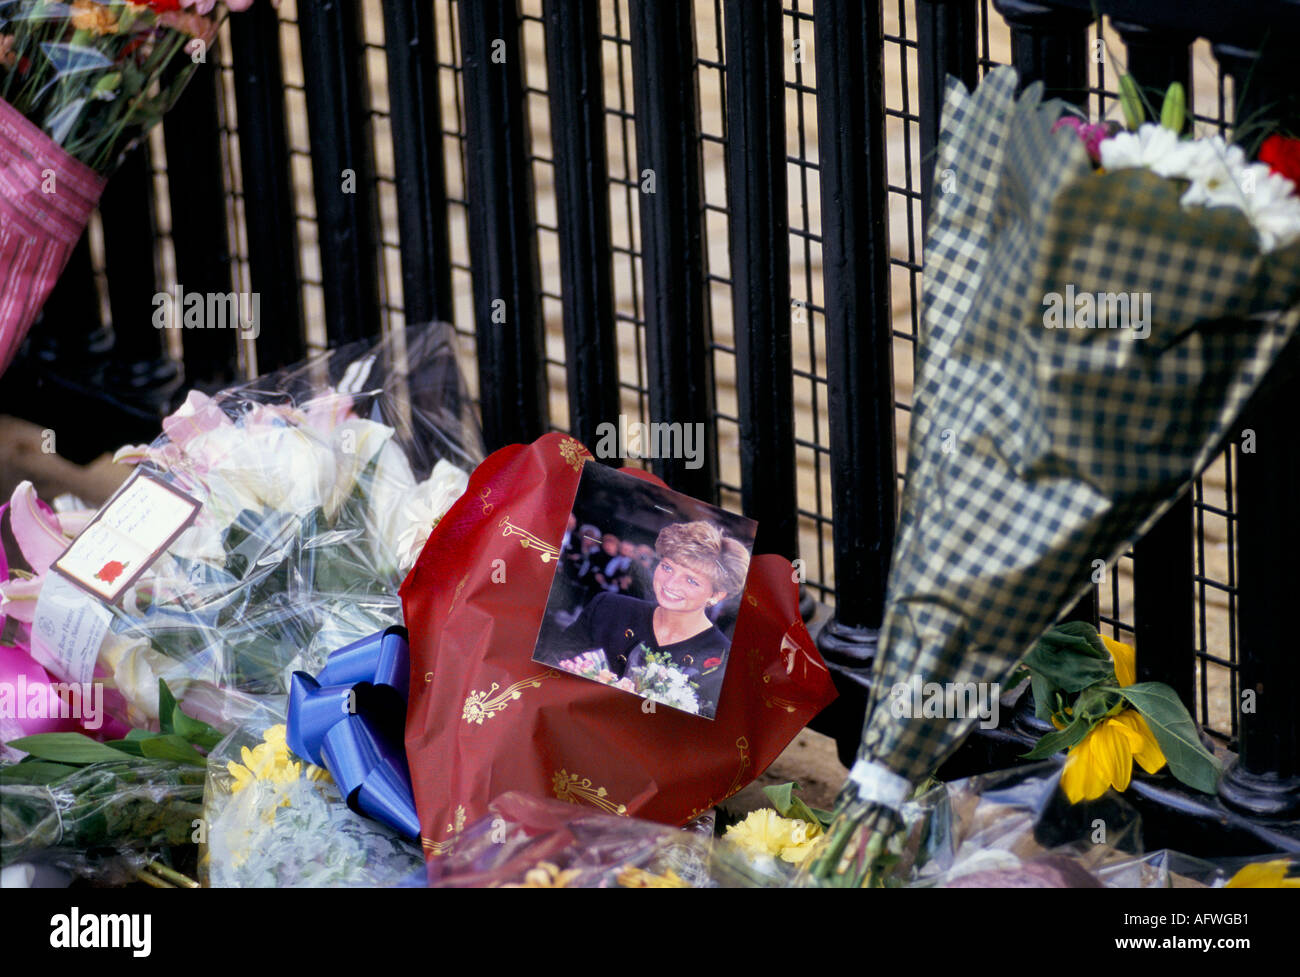 Diana Princess of Wales photograph flowers left as a floral tribute memorial September 1997 'Kensington Palace'  London UK 1990s HOMER SYKES - Stock Image